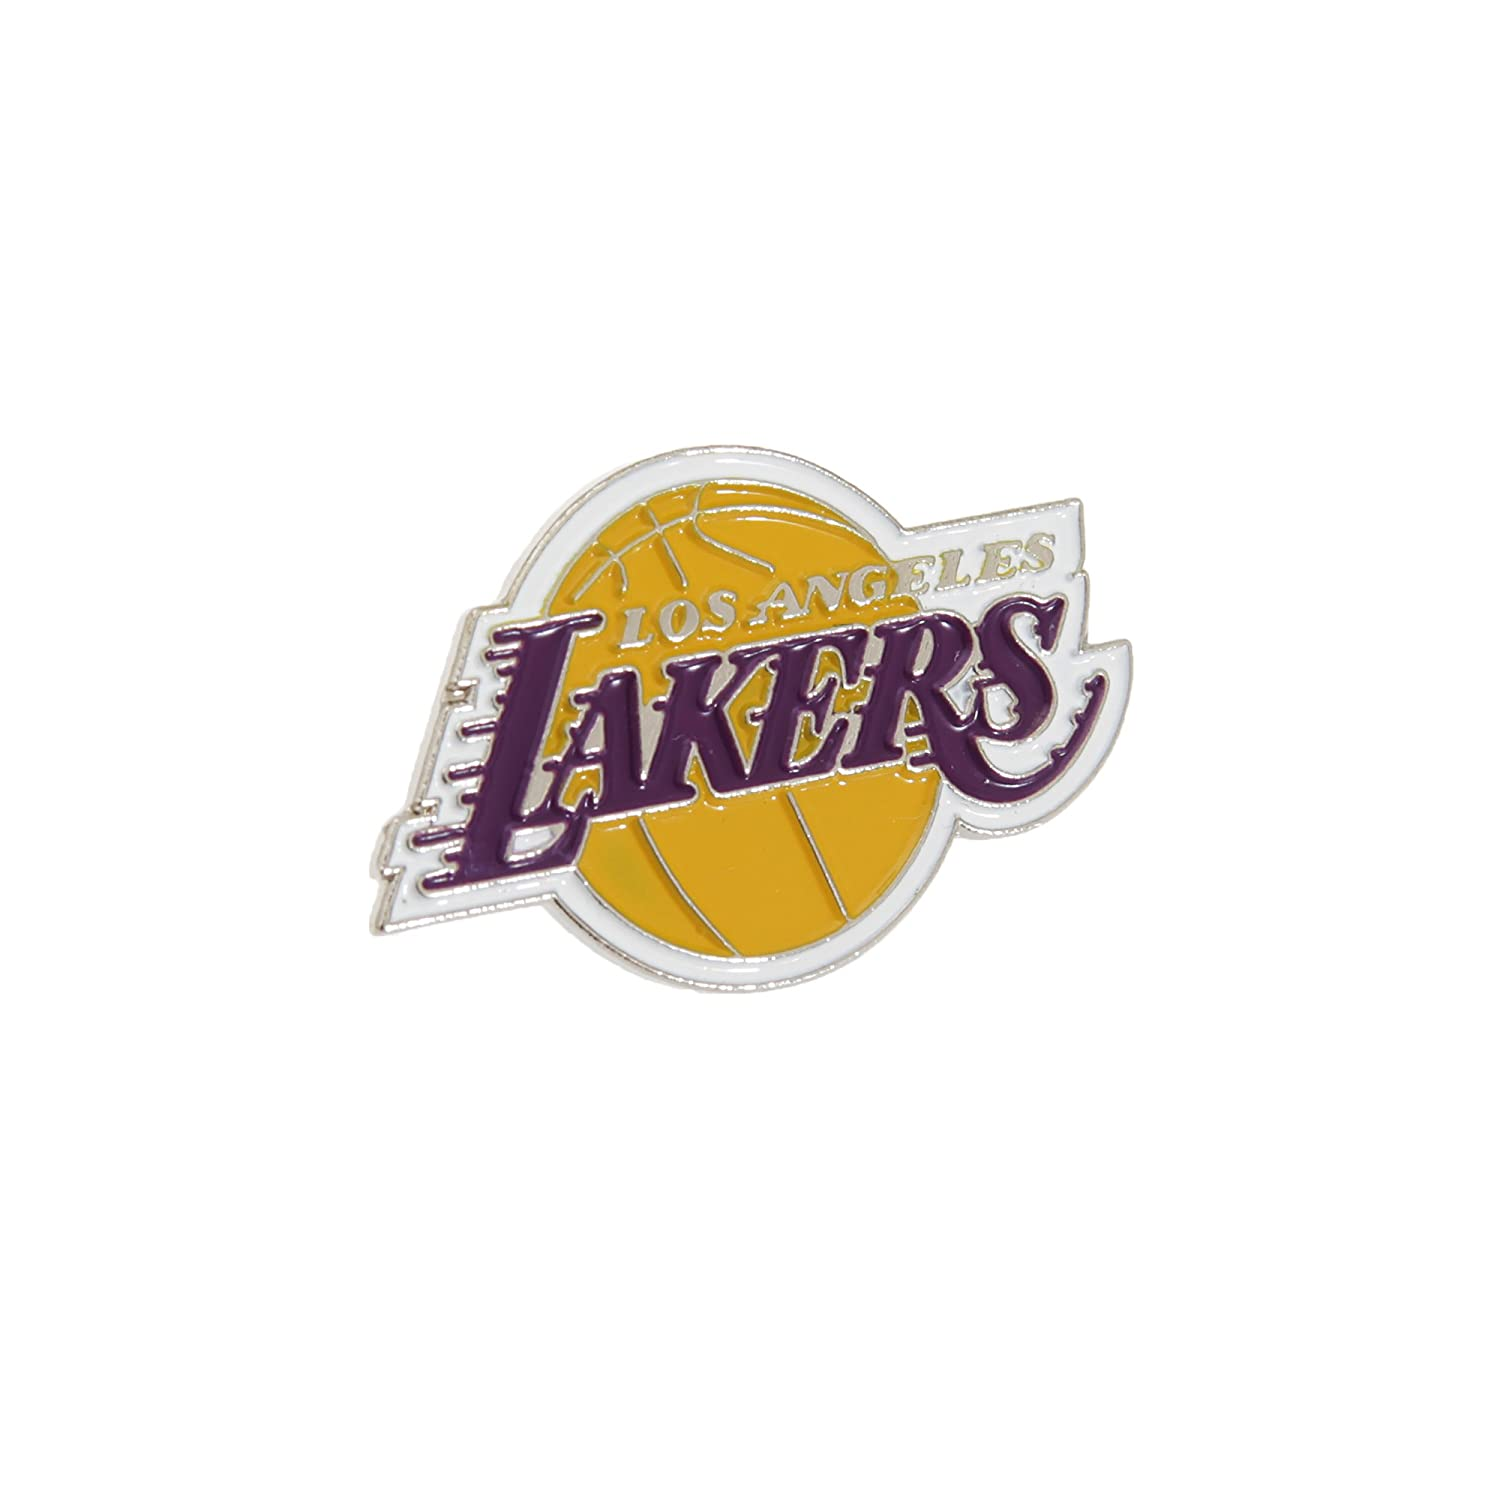 NBA Los Angeles Lakers ufficiale in Metallo con Stemma Spilla TU Football Souvenirs BDUKNBCRSLAL